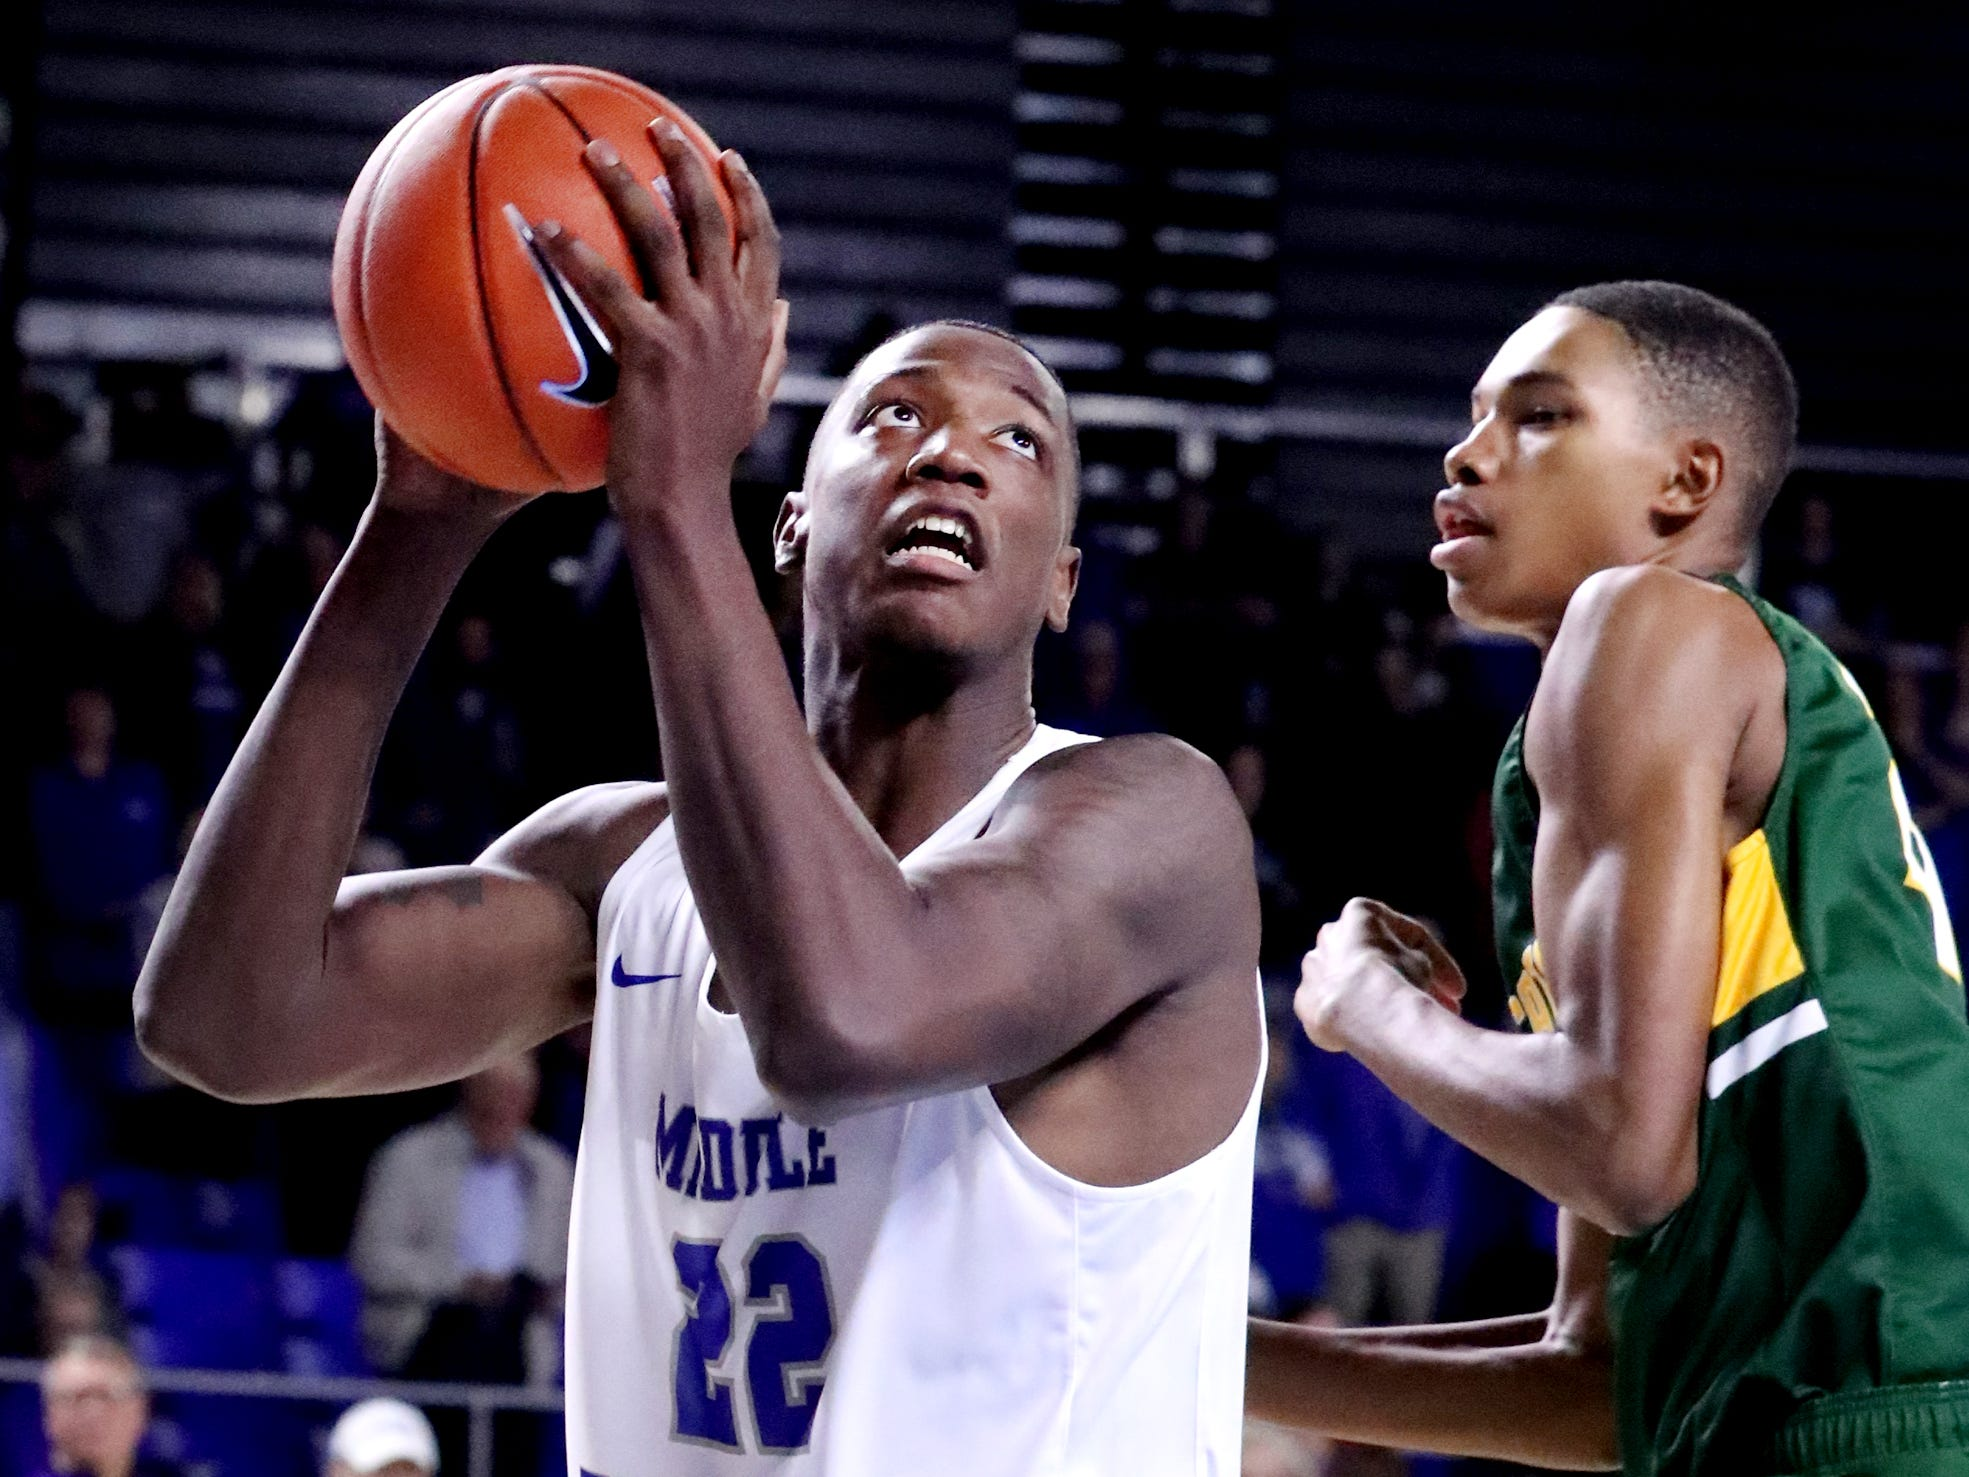 MTSU's Reggie Scurry (22) goes for a shot as Lees-McRae's Michael Harris (21) guards him on Tuesday, Nov. 6, 2018.